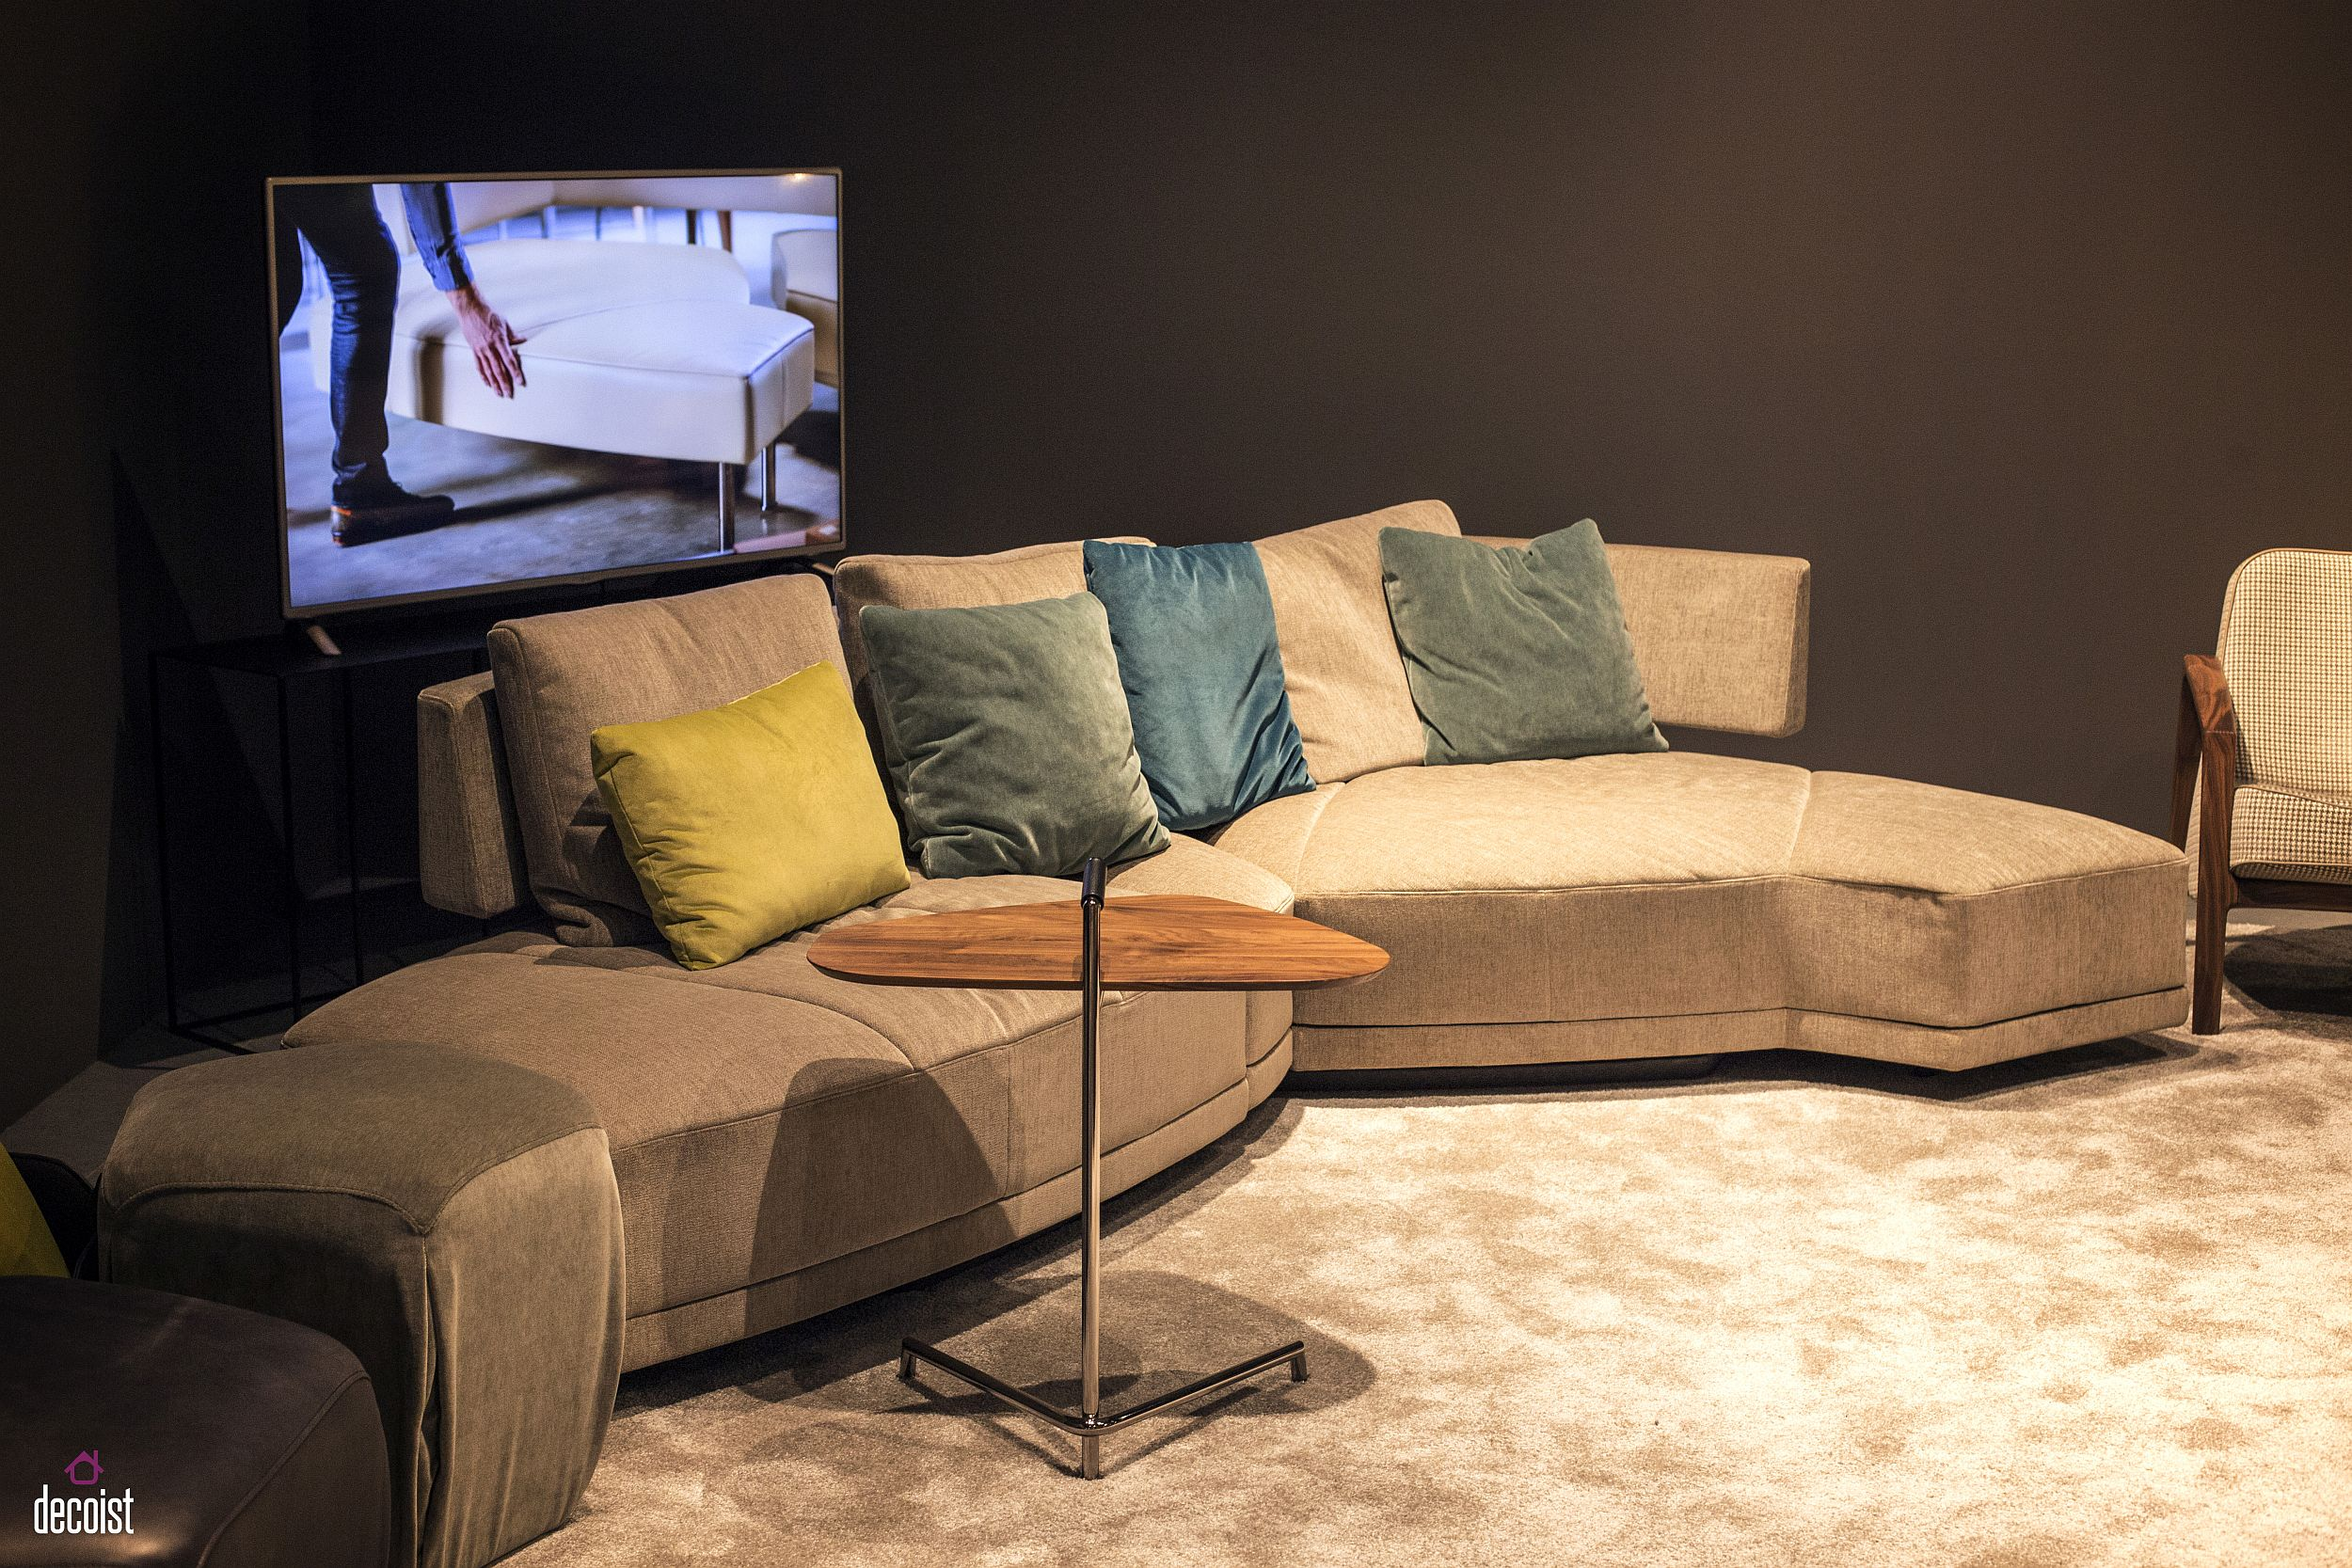 Ultra-minimal TV stand behind the couch vanishes into the backdrop!